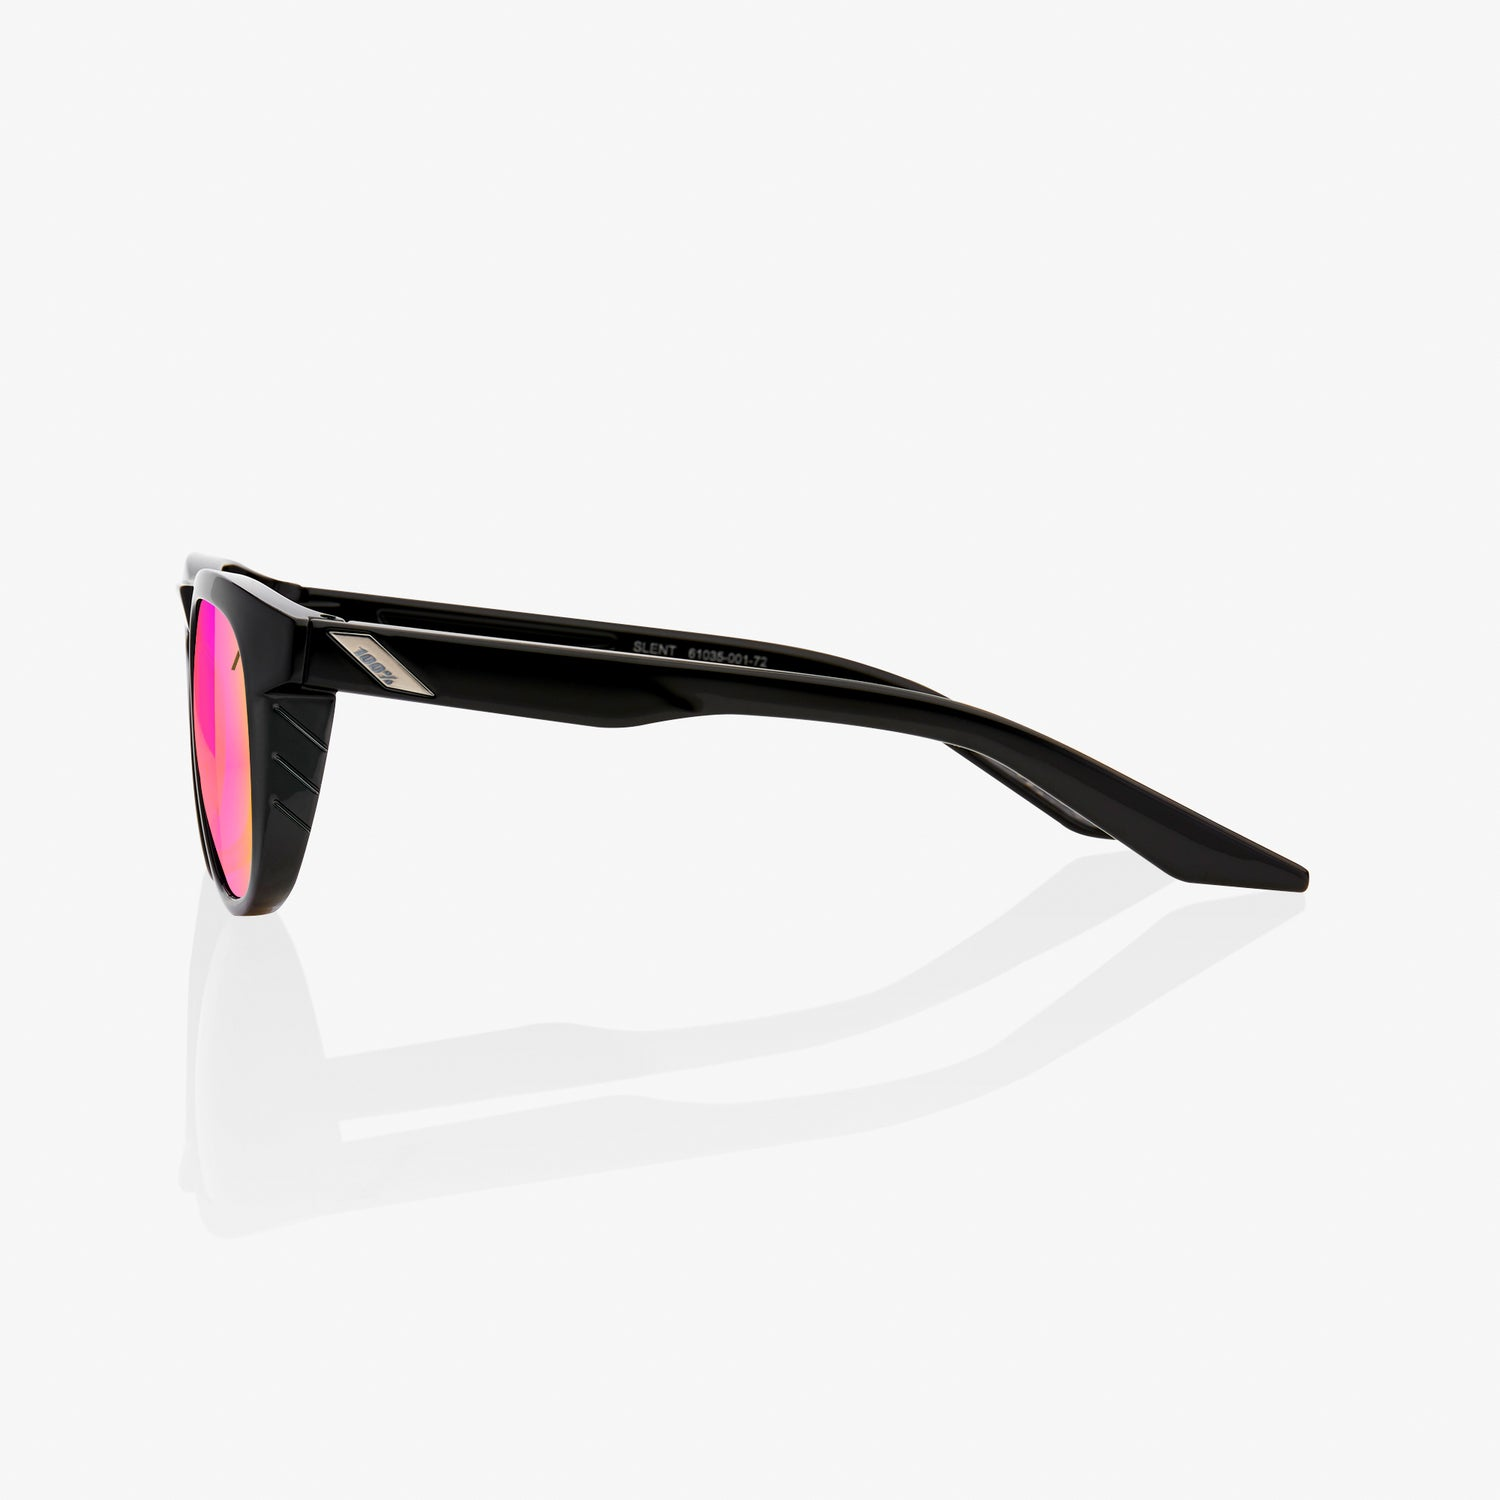 Slent - Polished Black - Purple Multilayer Mirror Lens